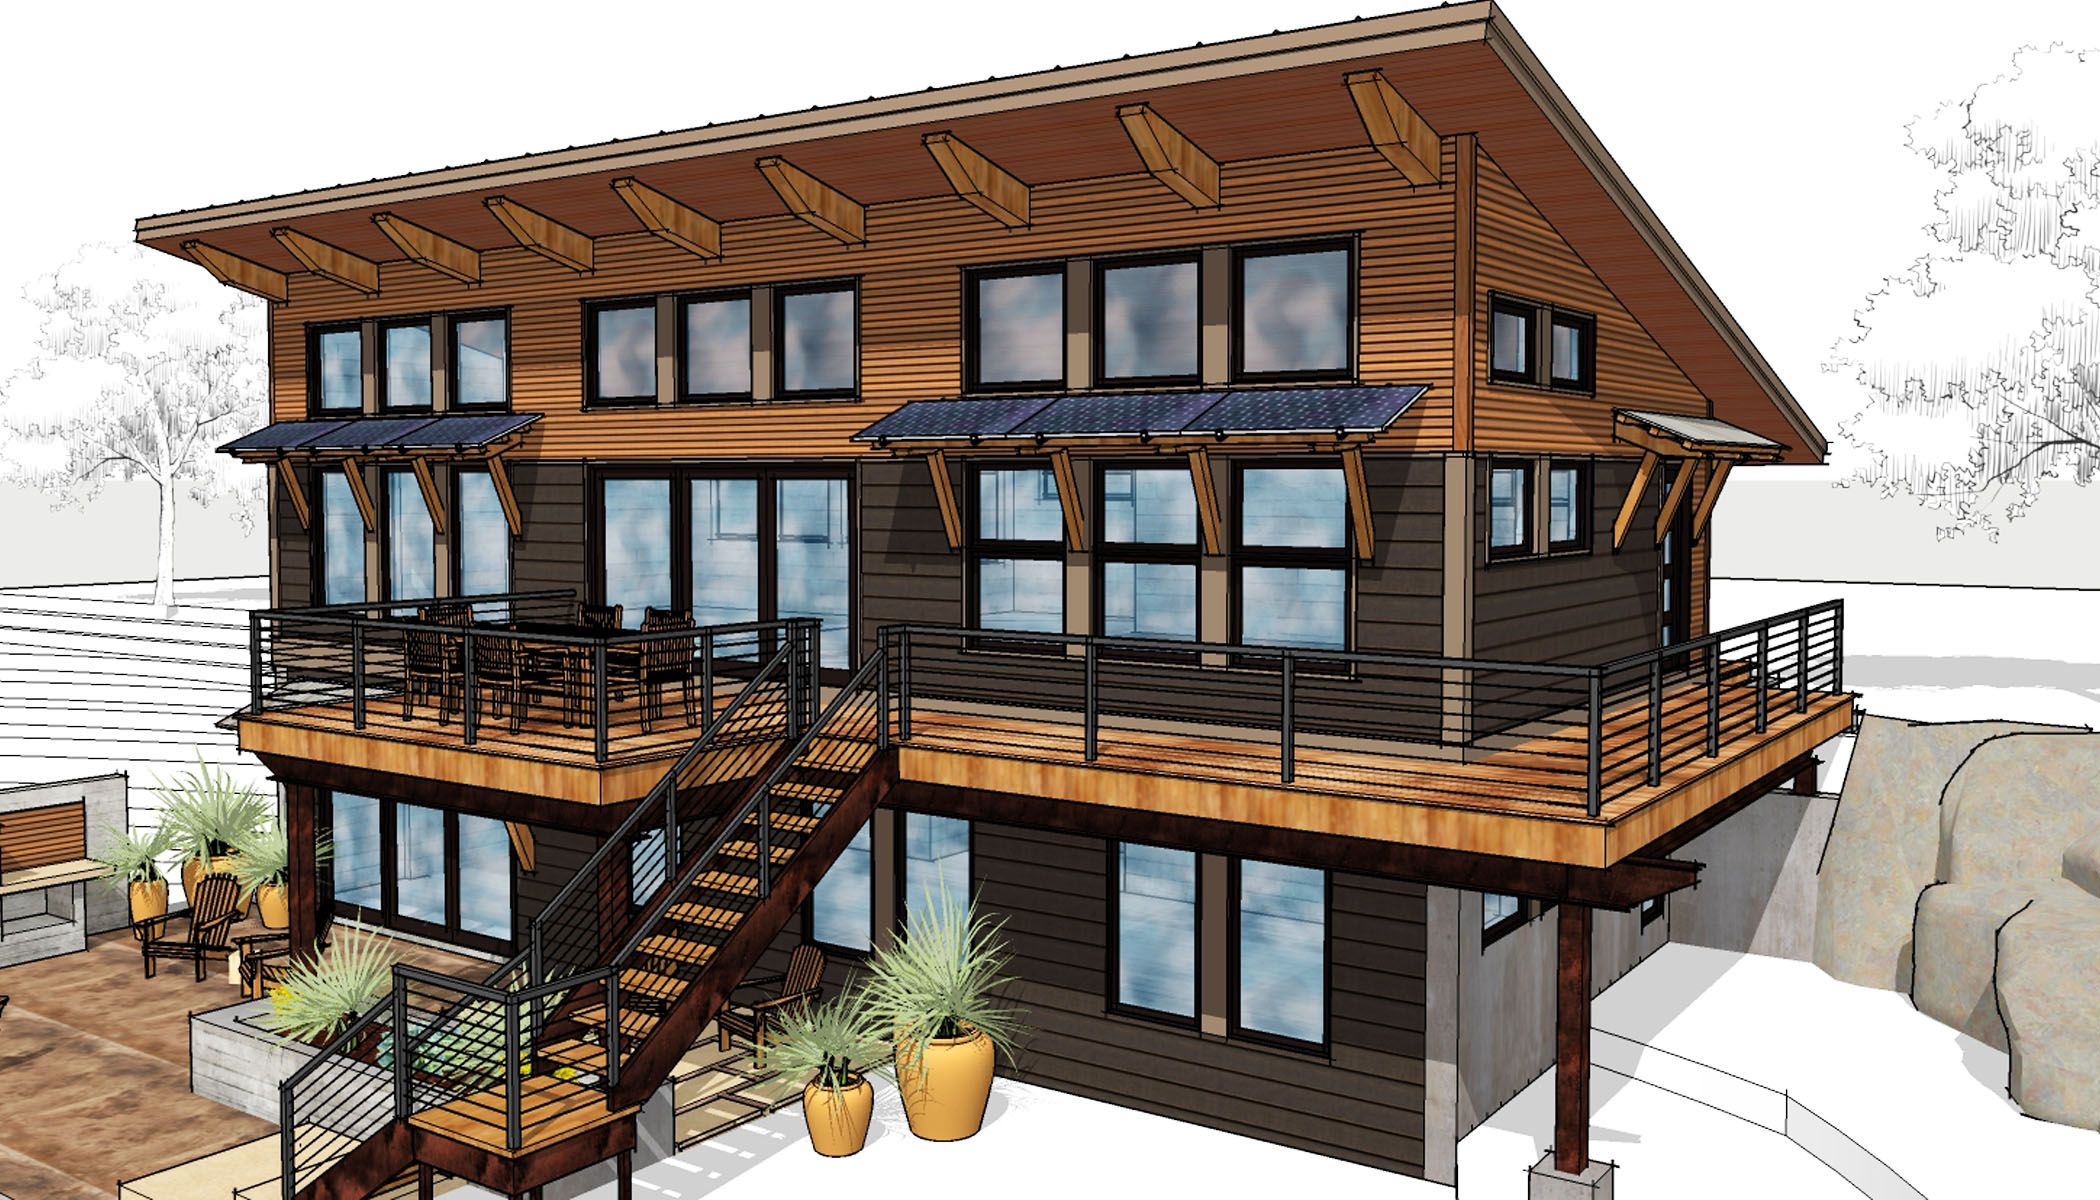 The Full View Of The Wondrous Window Passive Solar Side Of The Pearce Http Www Timberbuilt Com Buildin Sip House Barn House Plans Contemporary House Plans